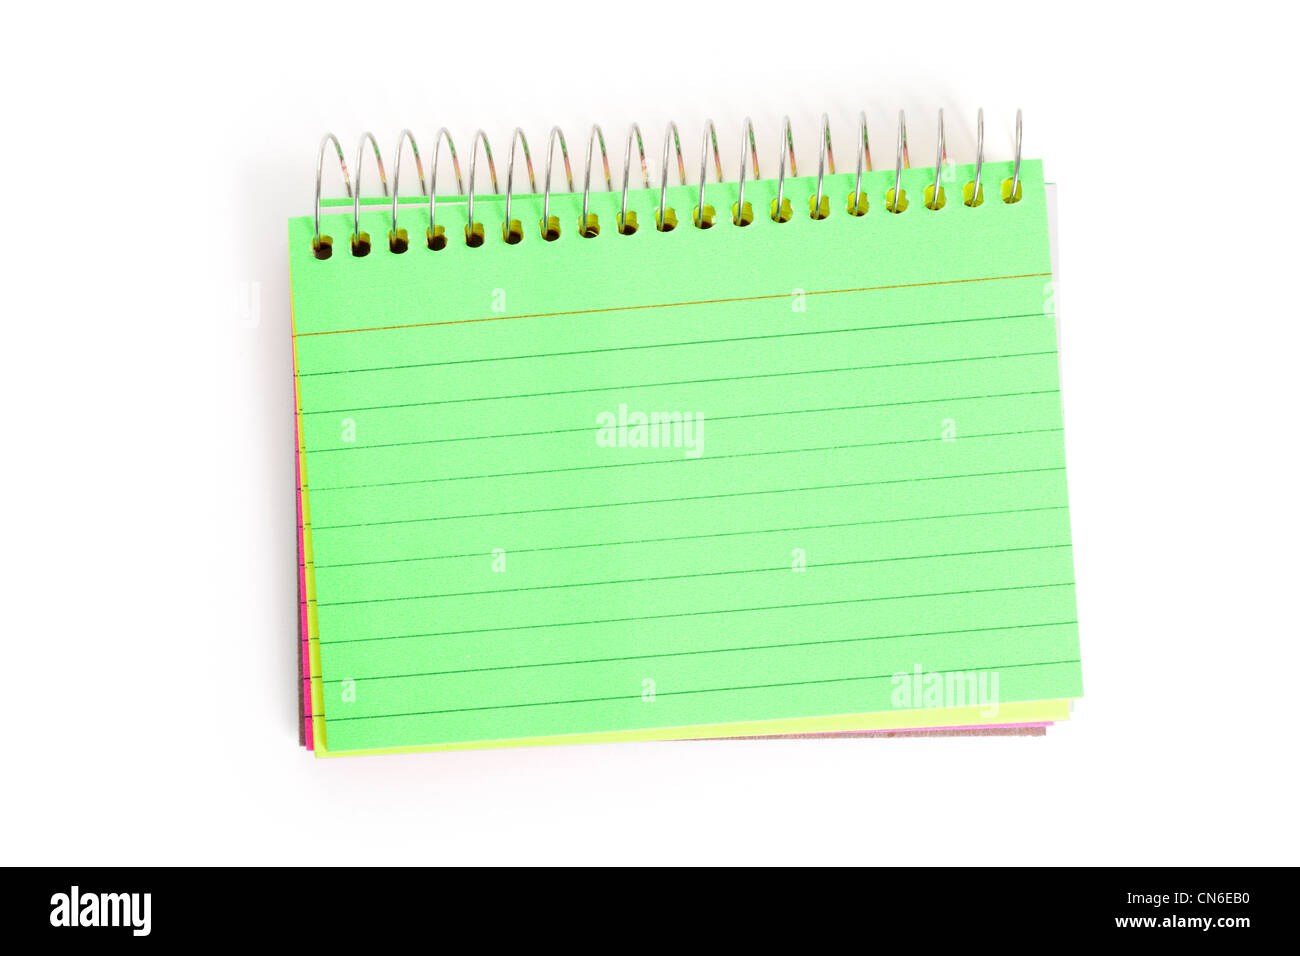 Green Note Pad with white background - Stock Image